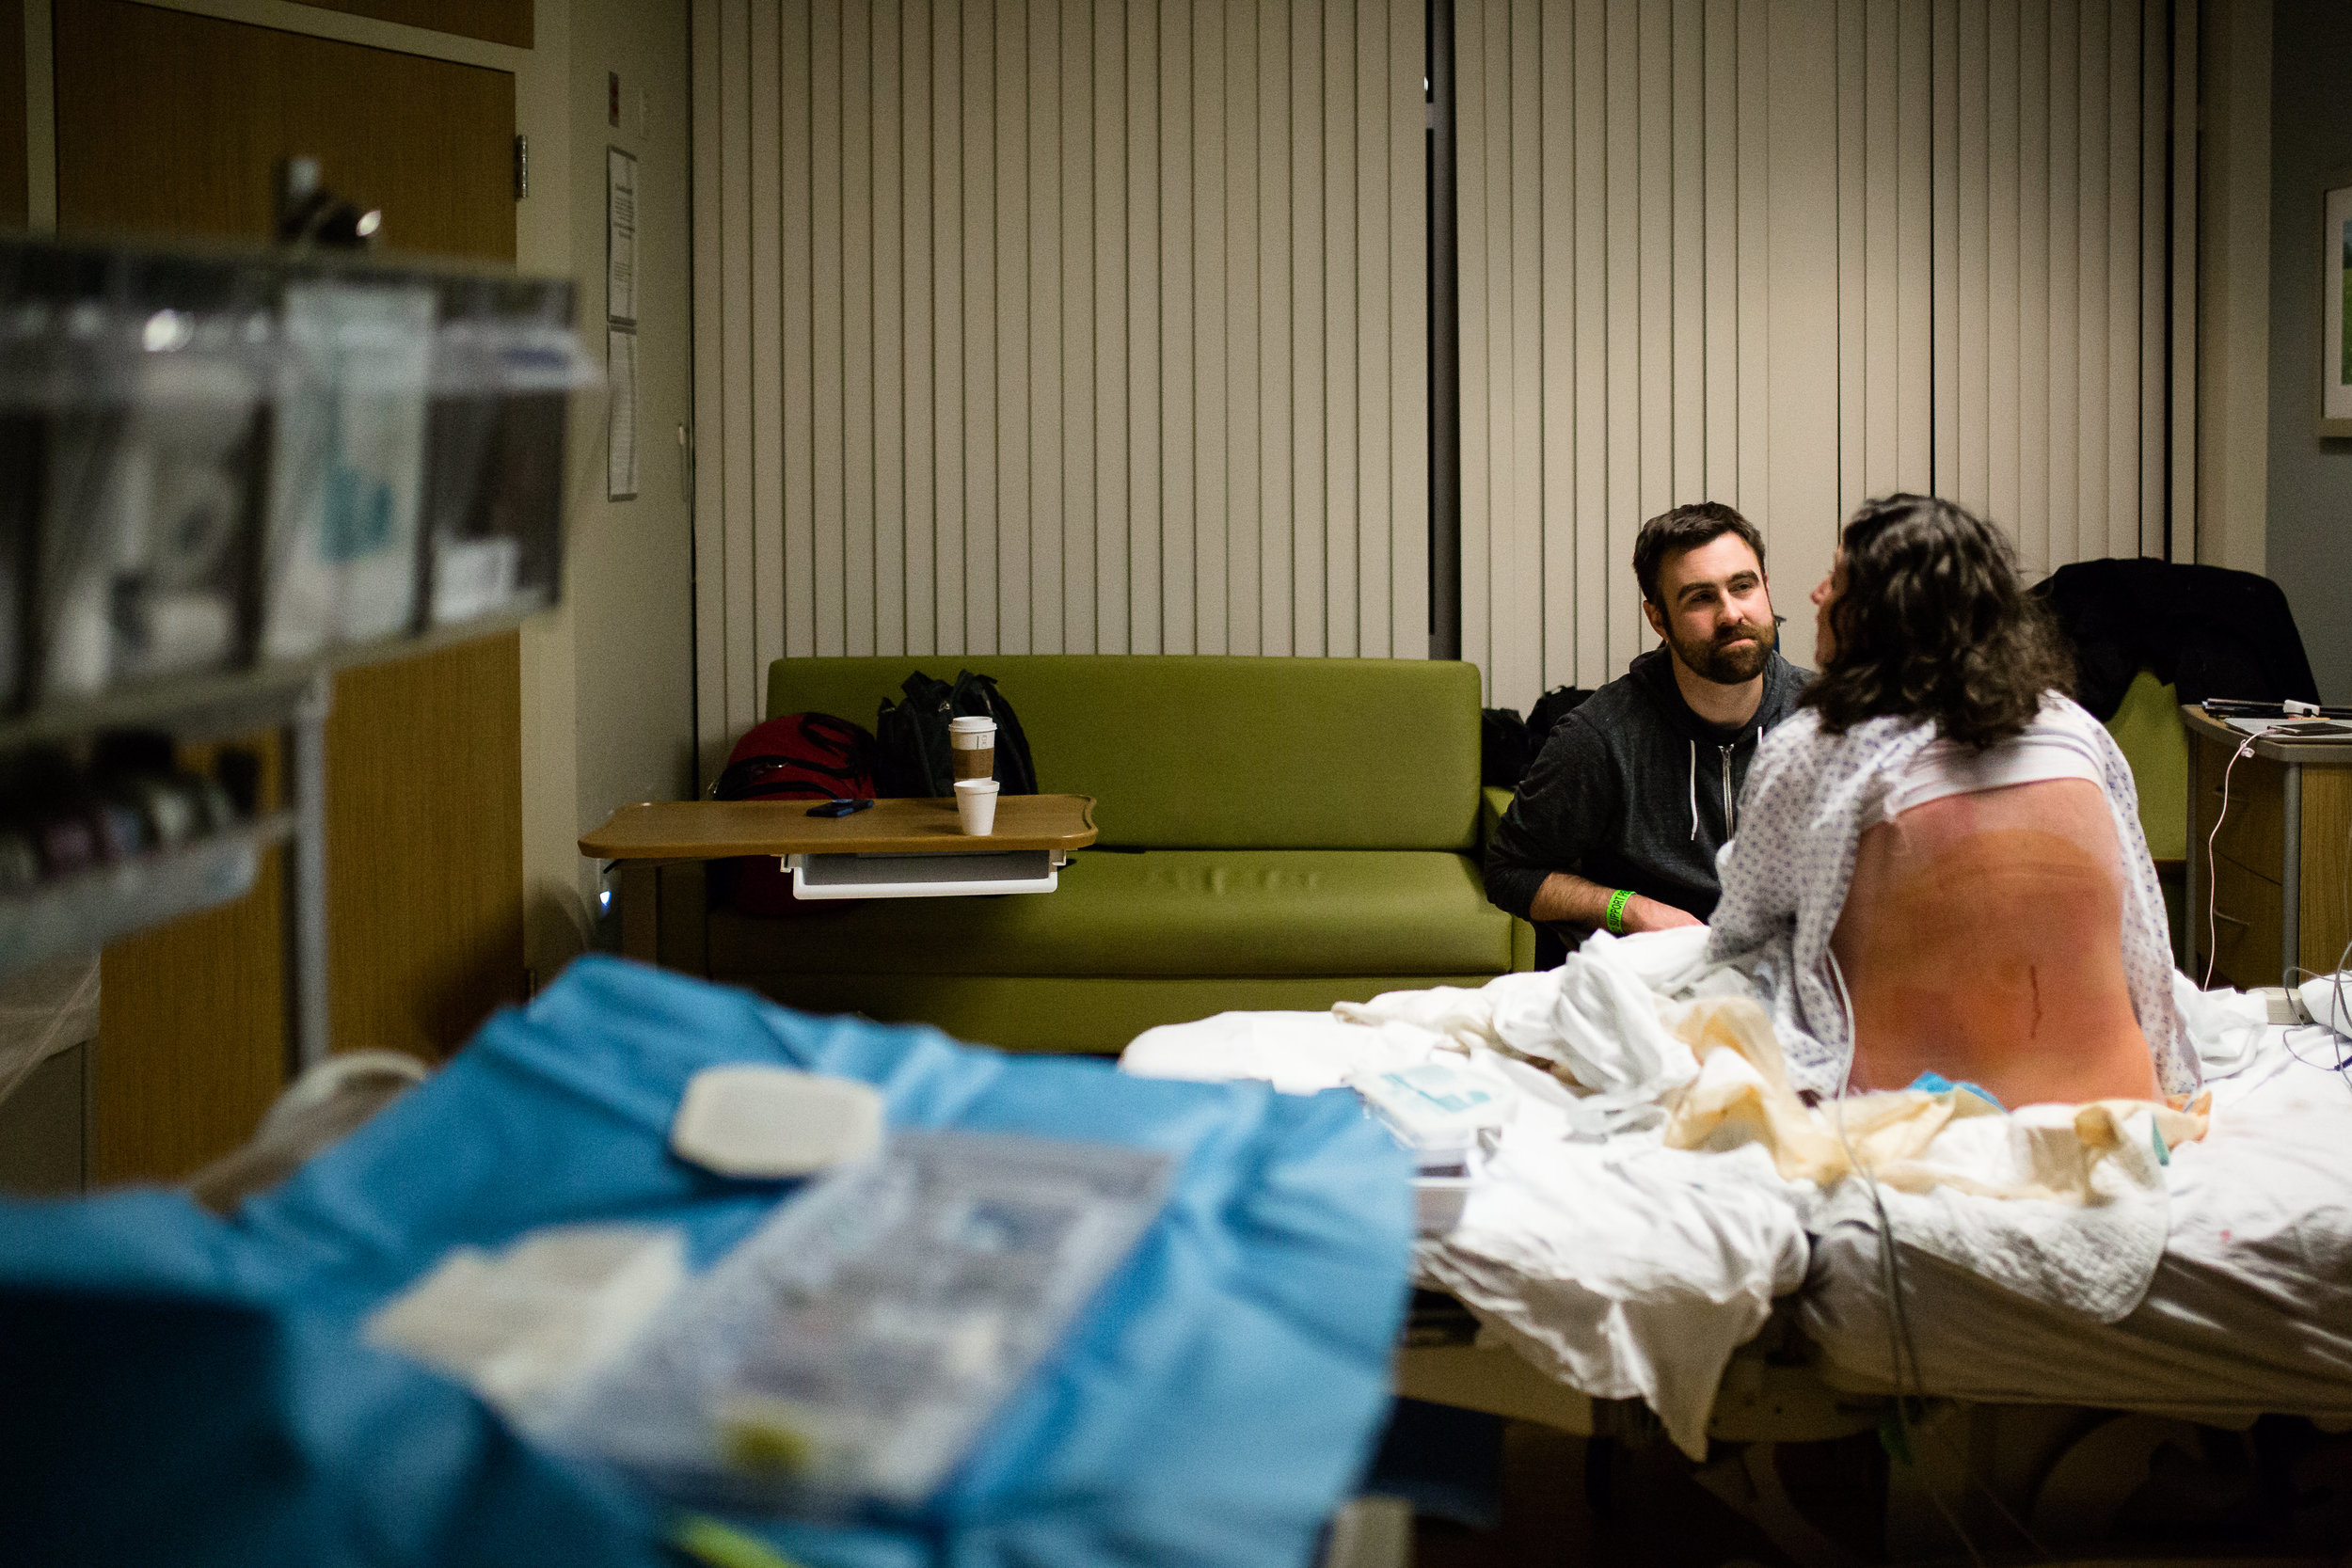 woman in labor waiting for an epidural